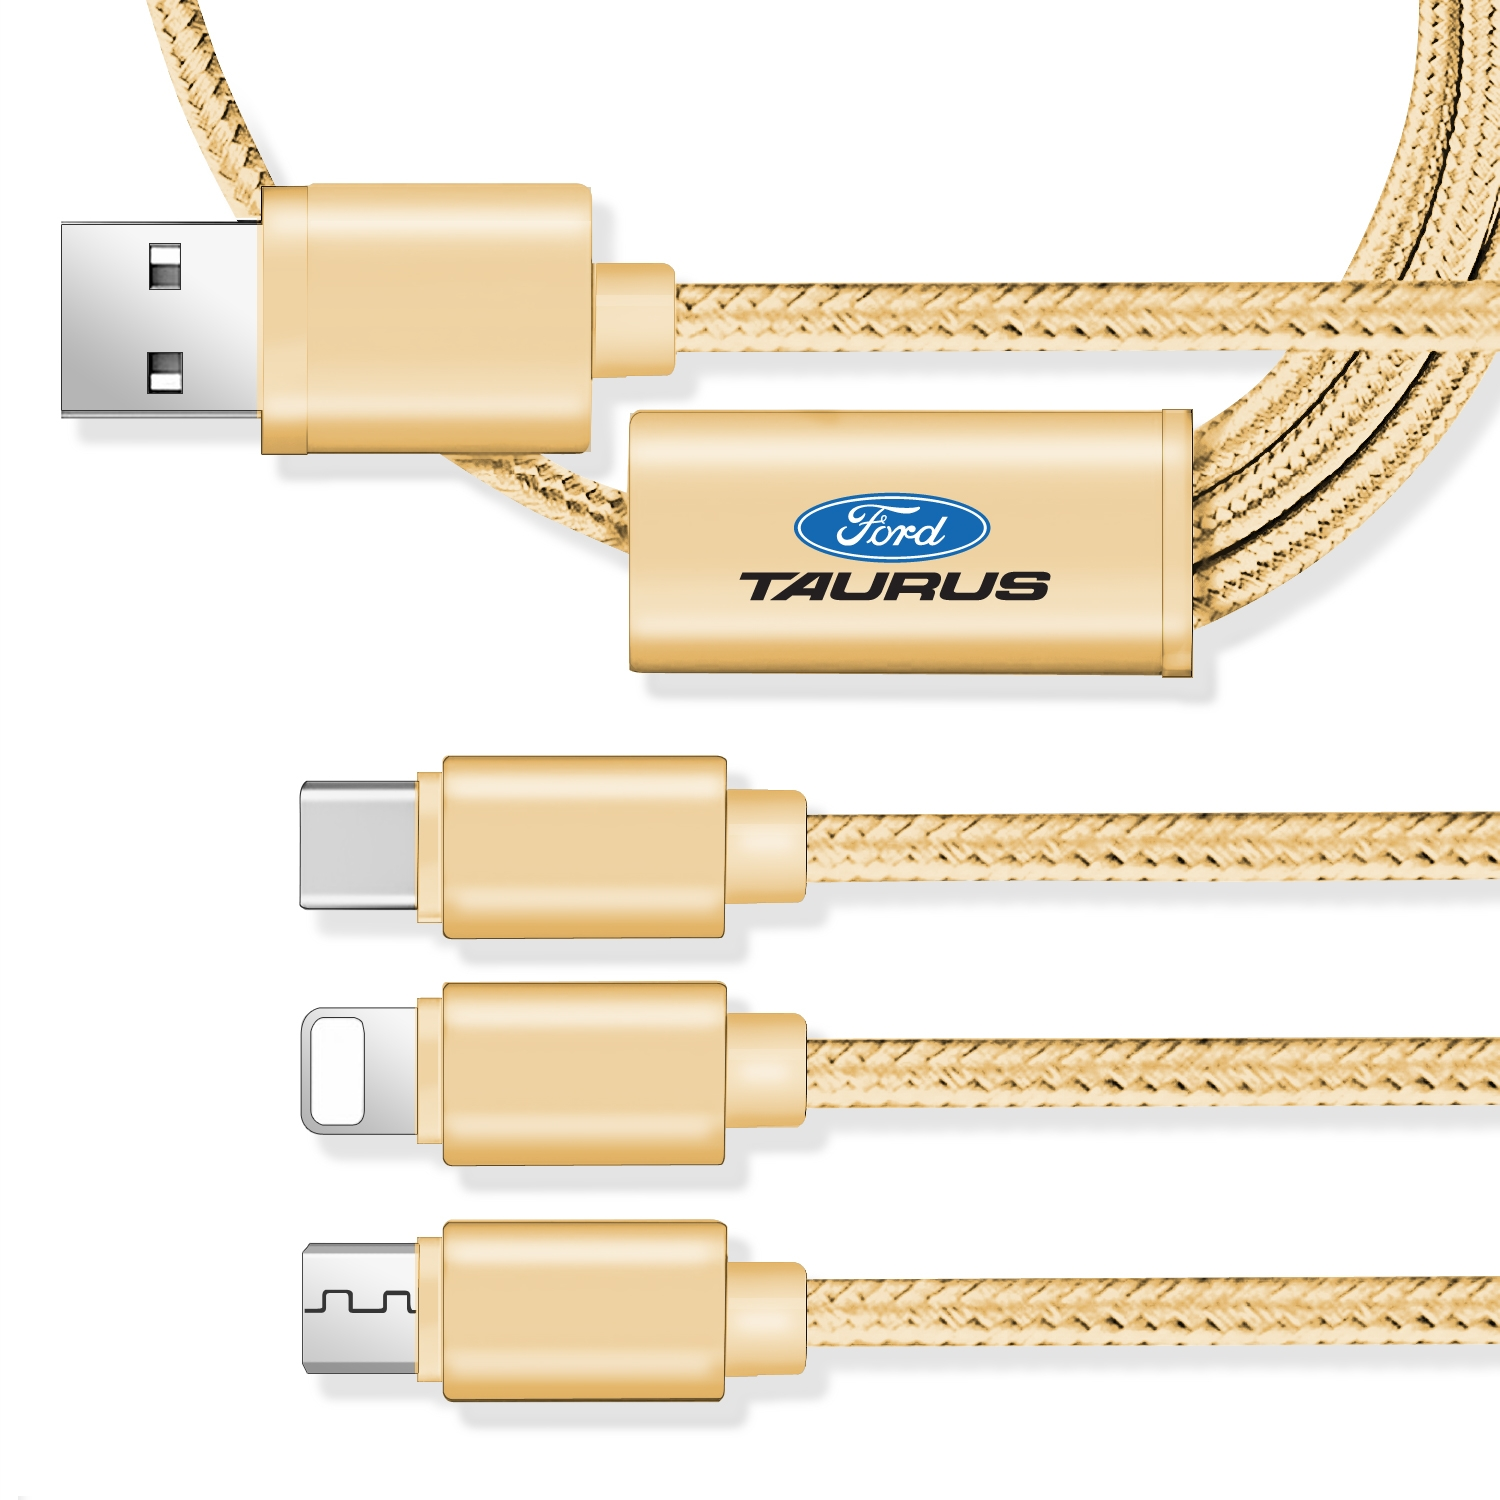 Ford Taurus 3 in 1 Golden 4 Ft Premium Multi Charging Cord USB Cable